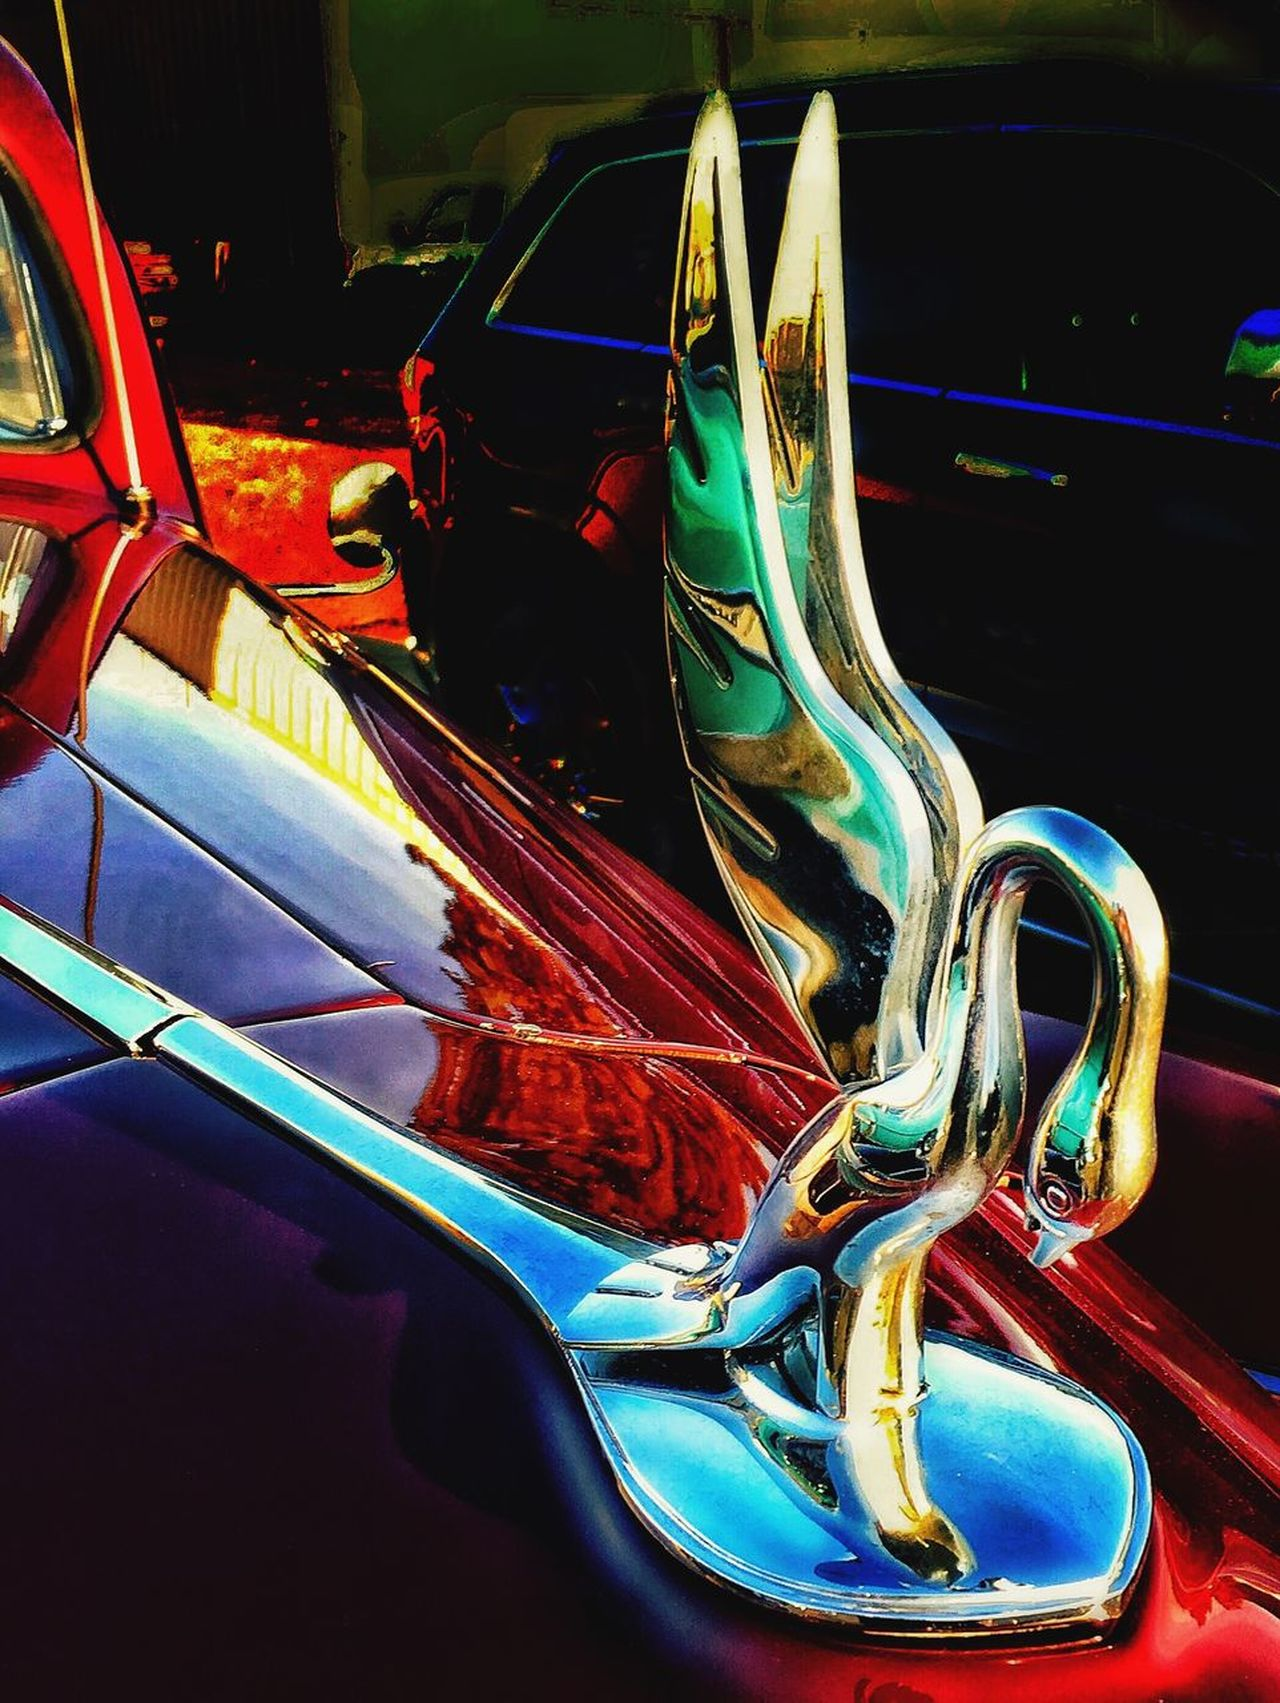 Car Hood Ornament Swan Hot Rod Car Collection No People Transportation Land Vehicle Mode Of Transport Multi Colored Outdoors Day Close-up